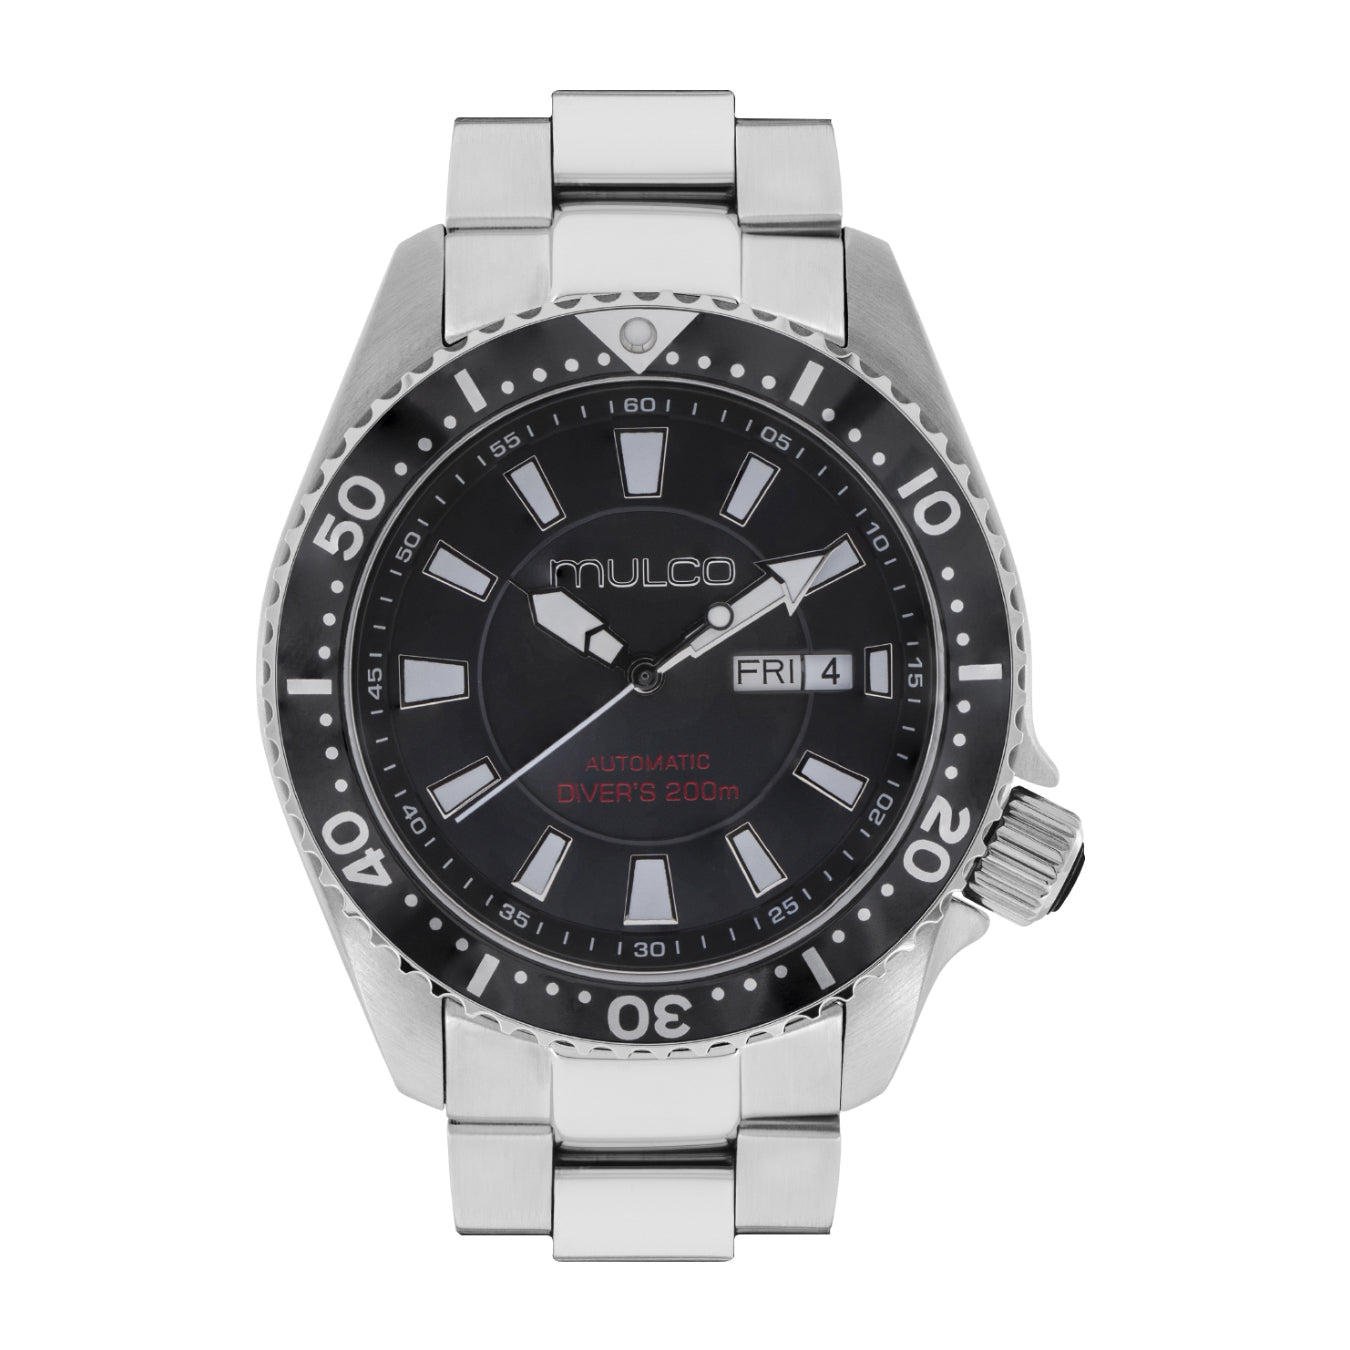 Men Watches | Solid Stainless Steel | Silver accents | Water Resistant